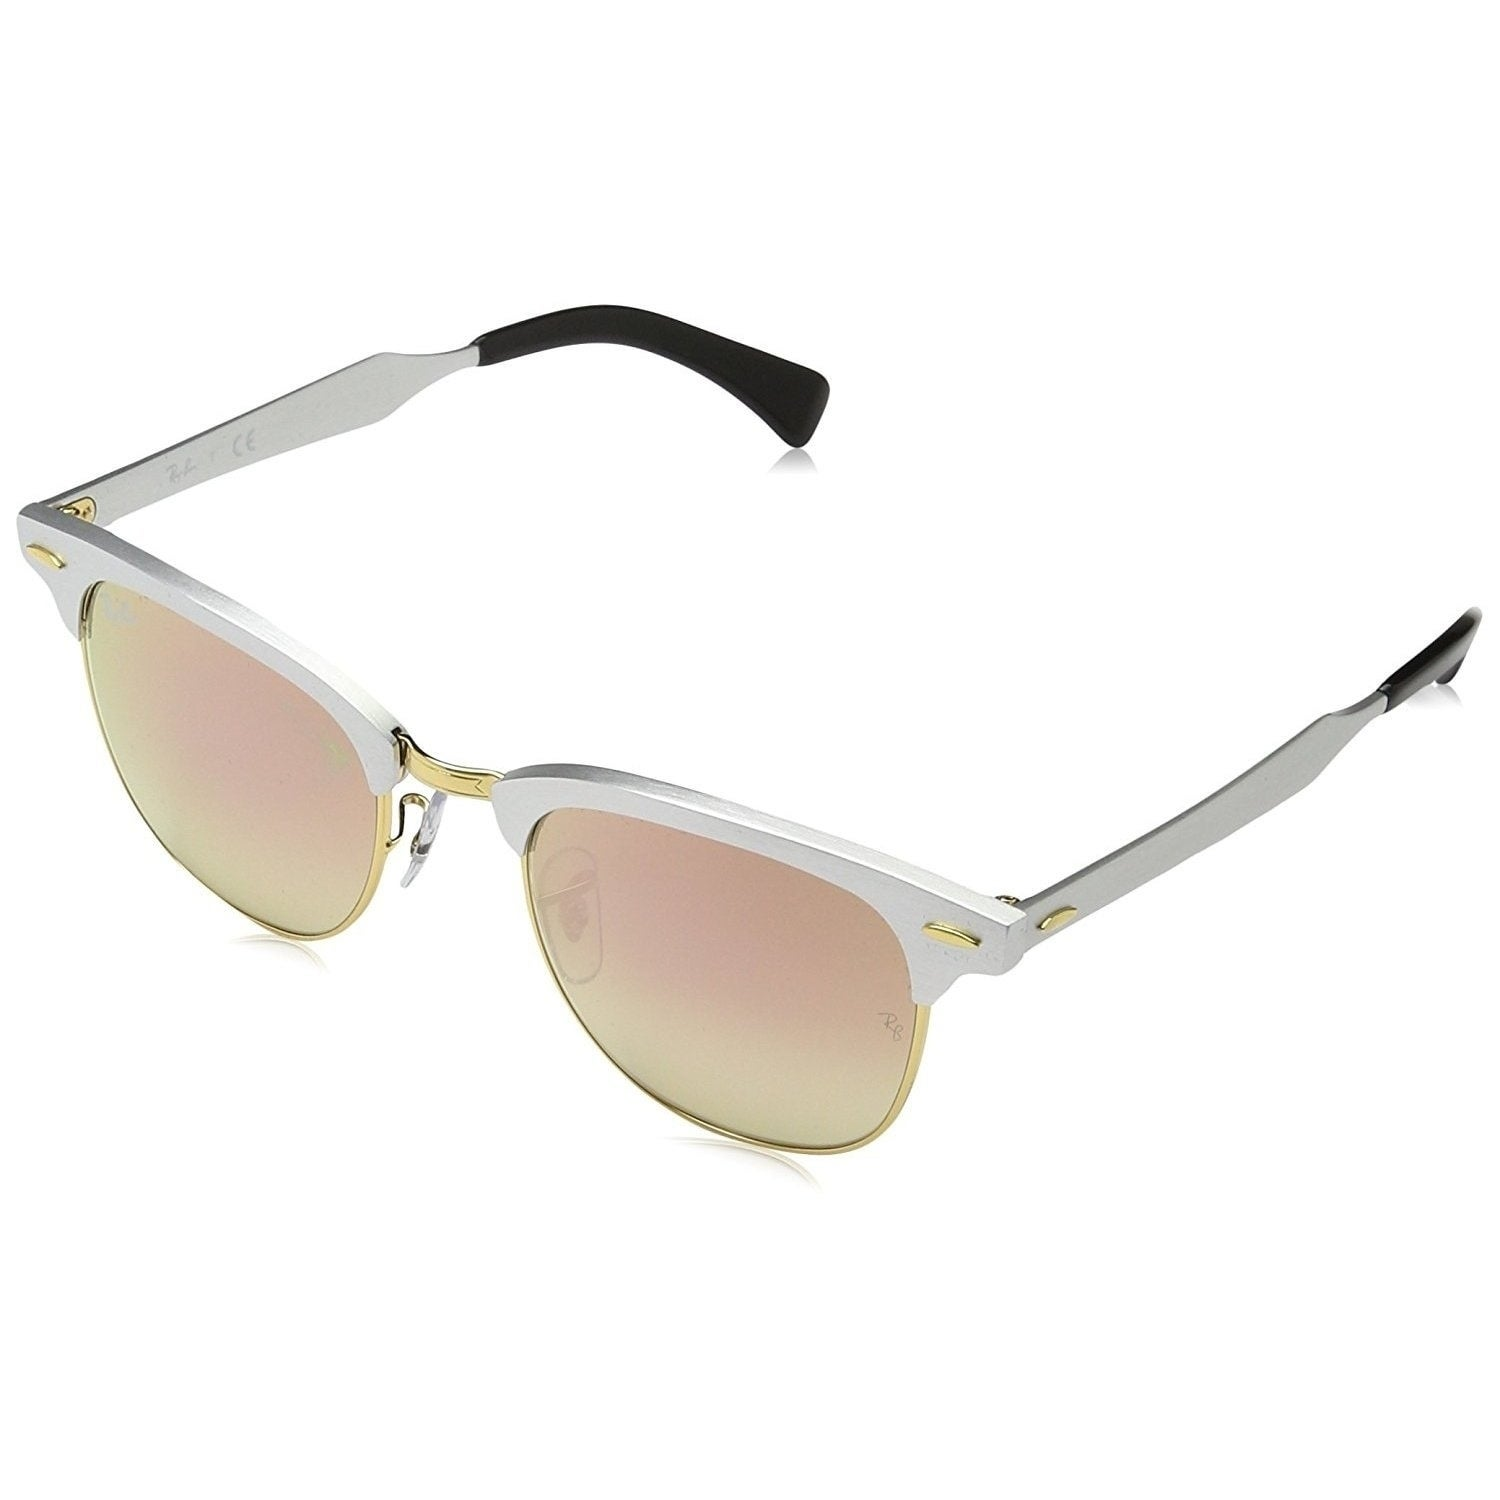 365c35fc816ef Shop Ray-Ban Unisex RB3507 137 7O CLubmaster Silver Frame Copper Gradient  Flash 51 mm Lens Sunglasses - Free Shipping Today - Overstock.com - 16740920